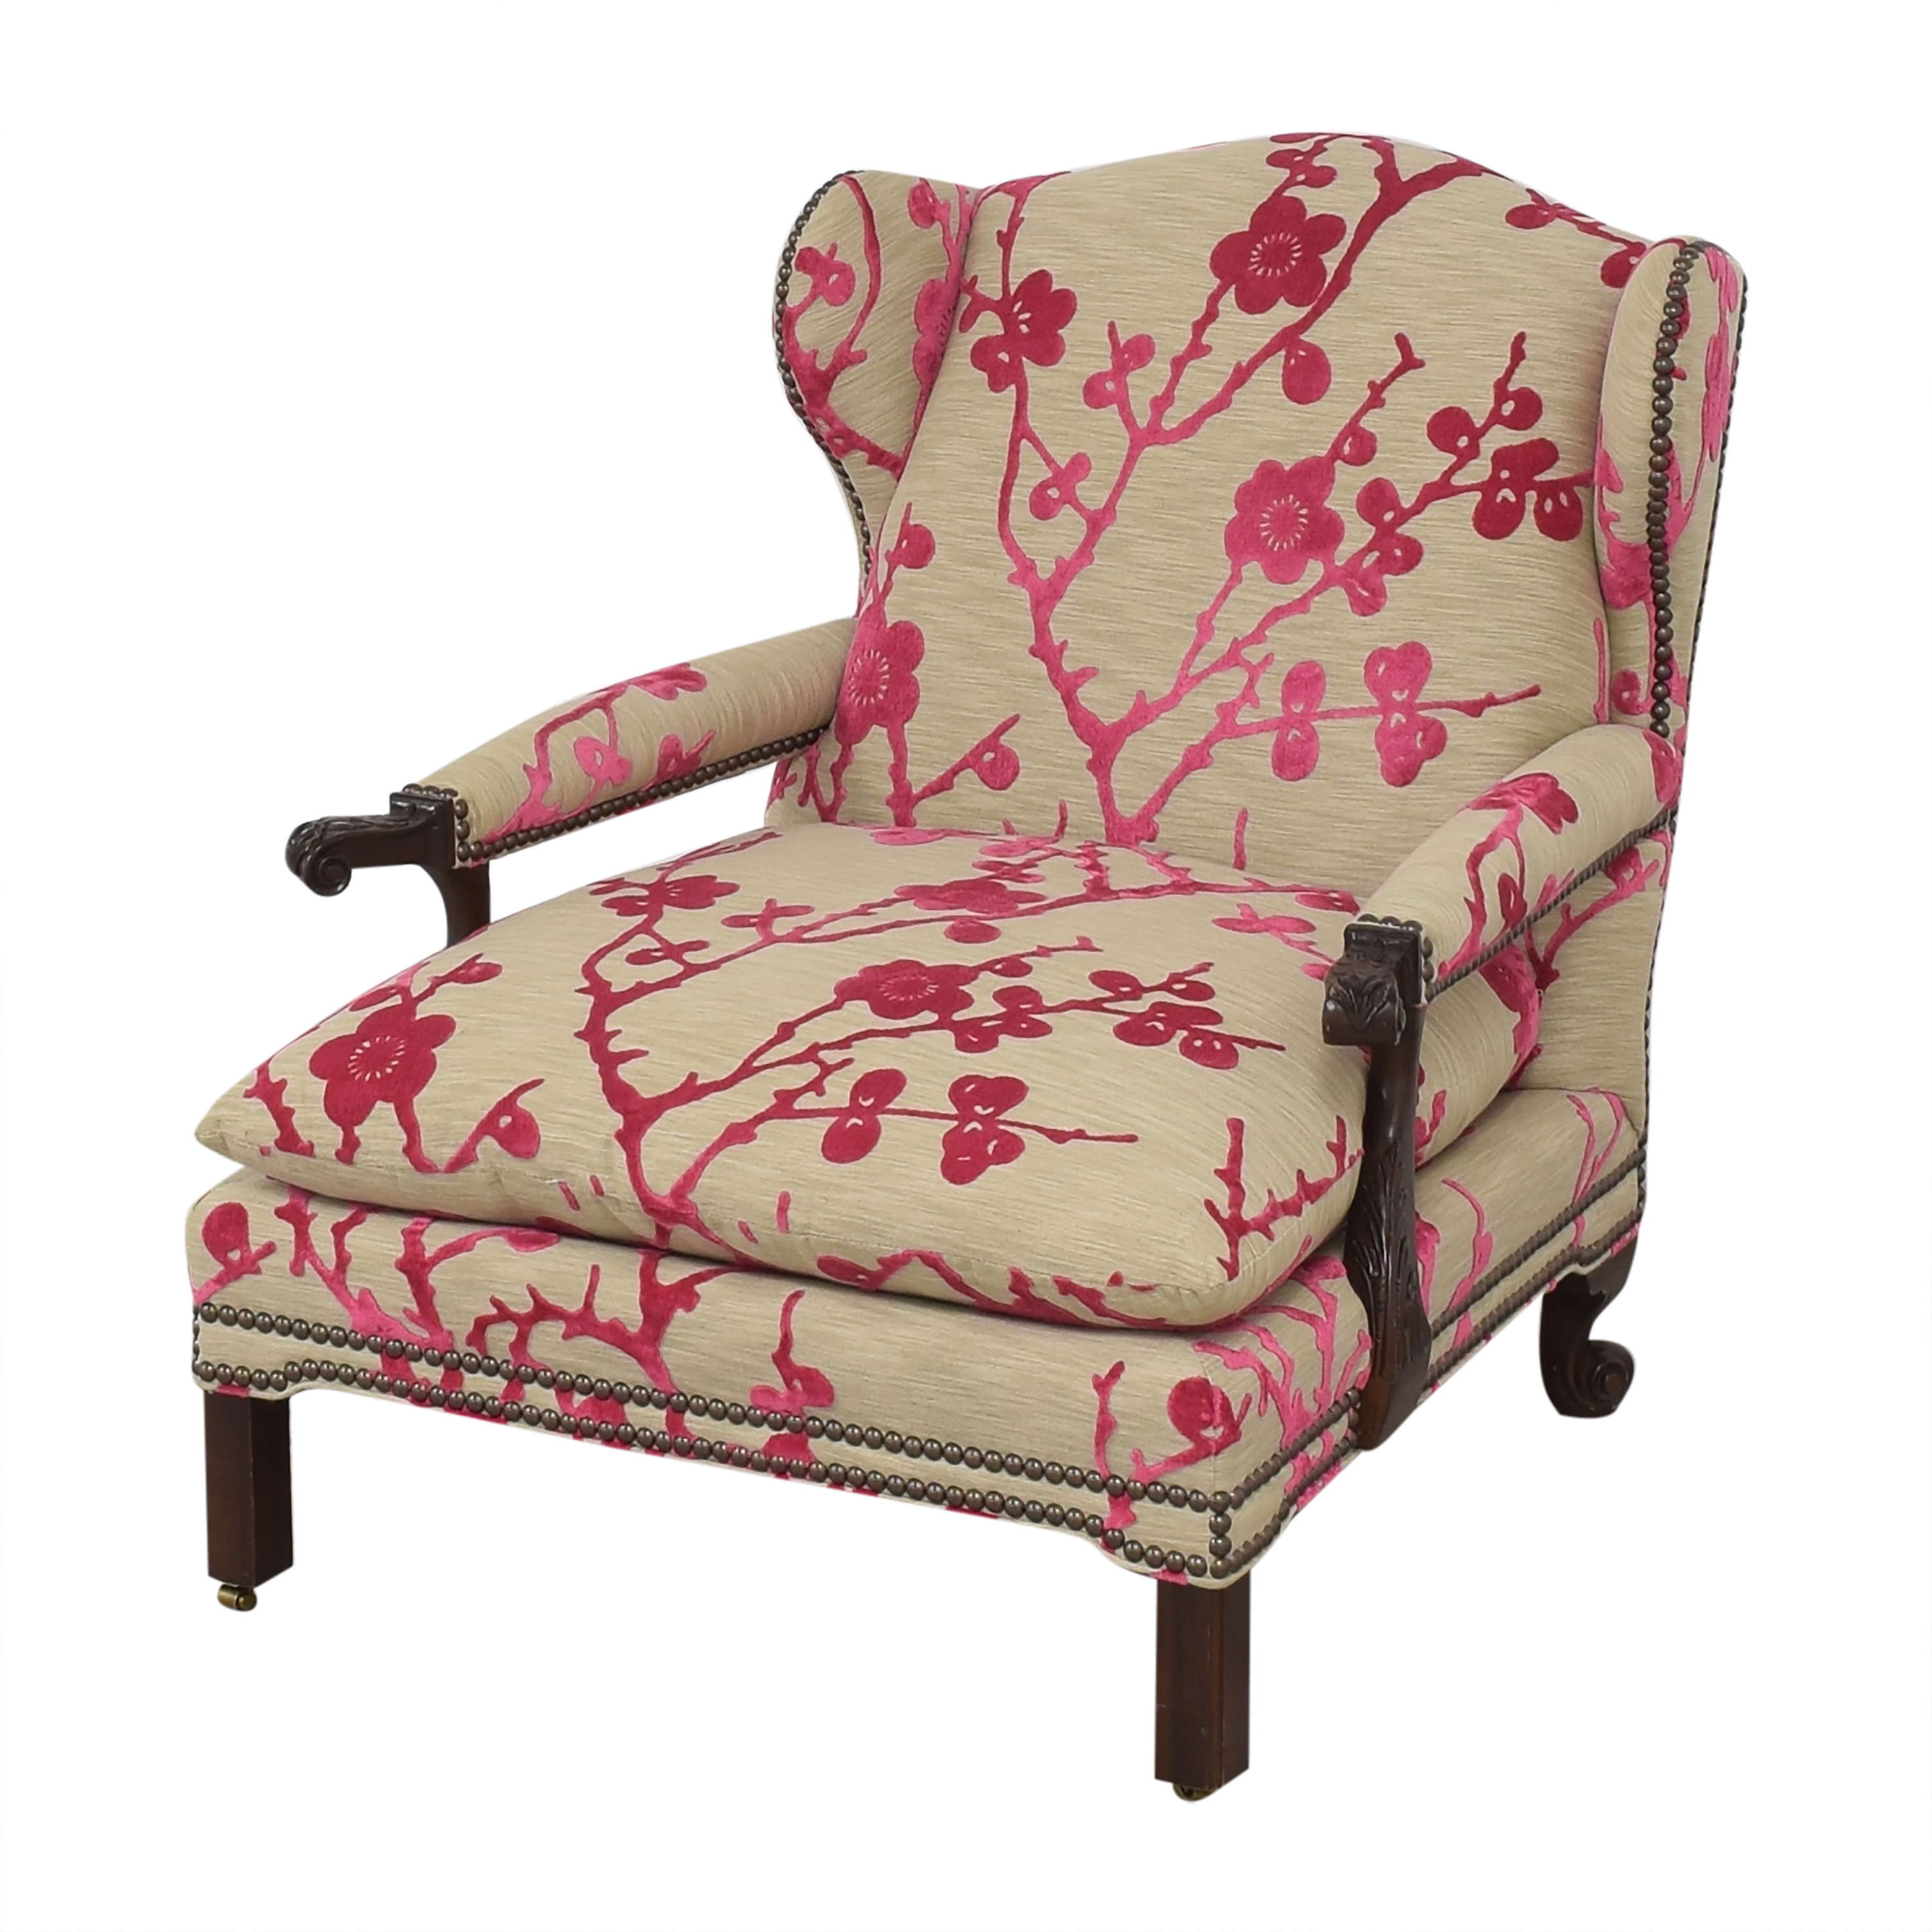 Hickory Chair Hickory Chair Custom Lounge Chair with Ottoman nyc